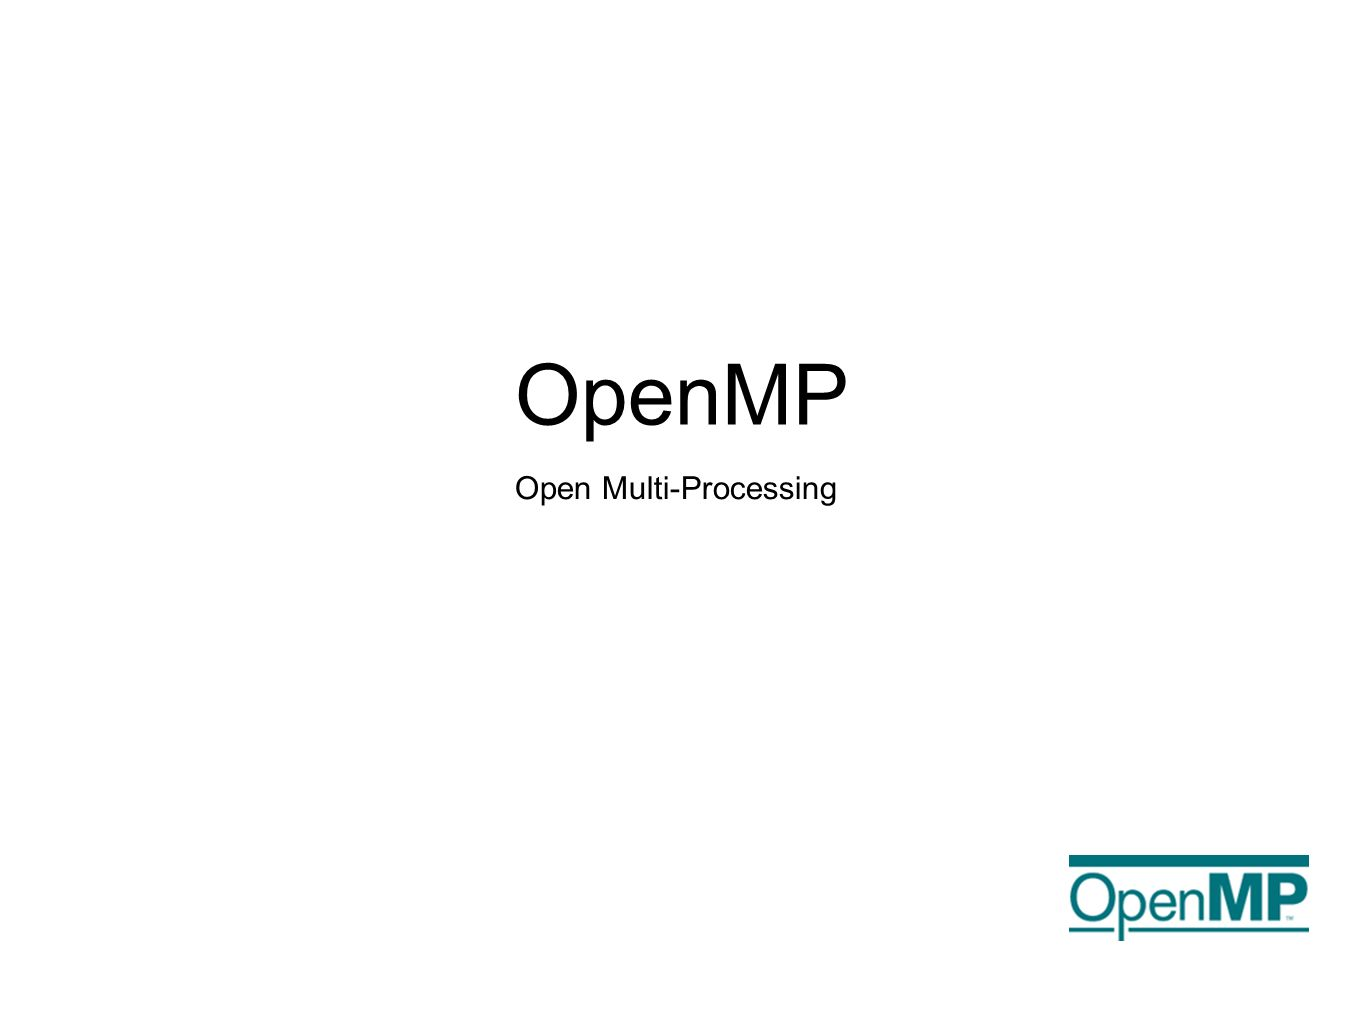 OpenMP Open Multi-Processing